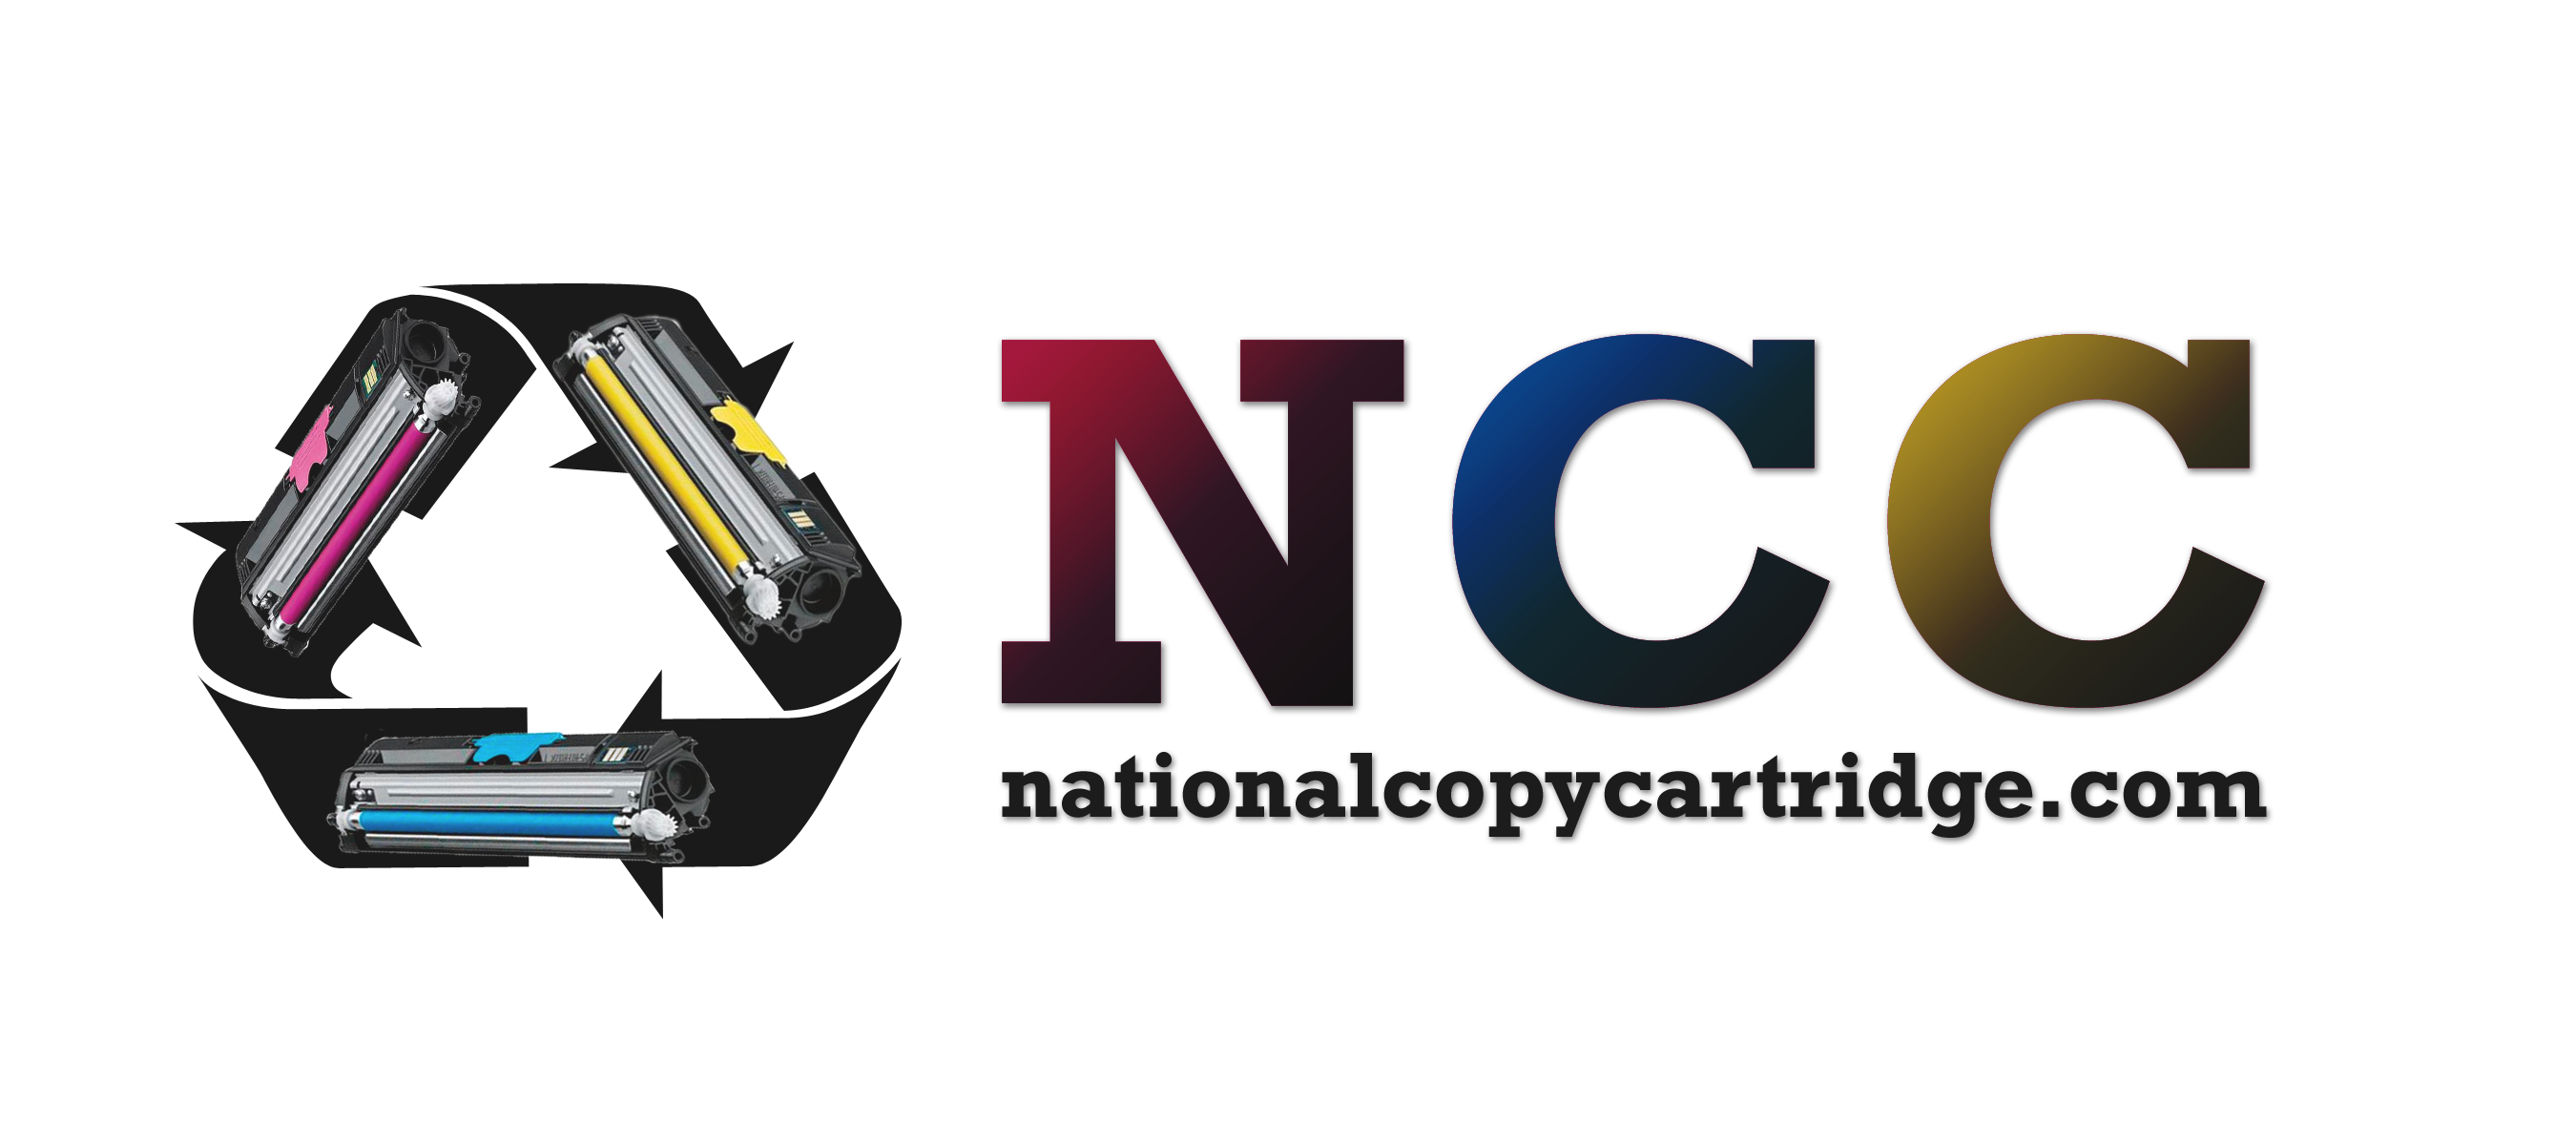 Made-in-California-manufacturer-National-Copy-Cartridge-logo.png